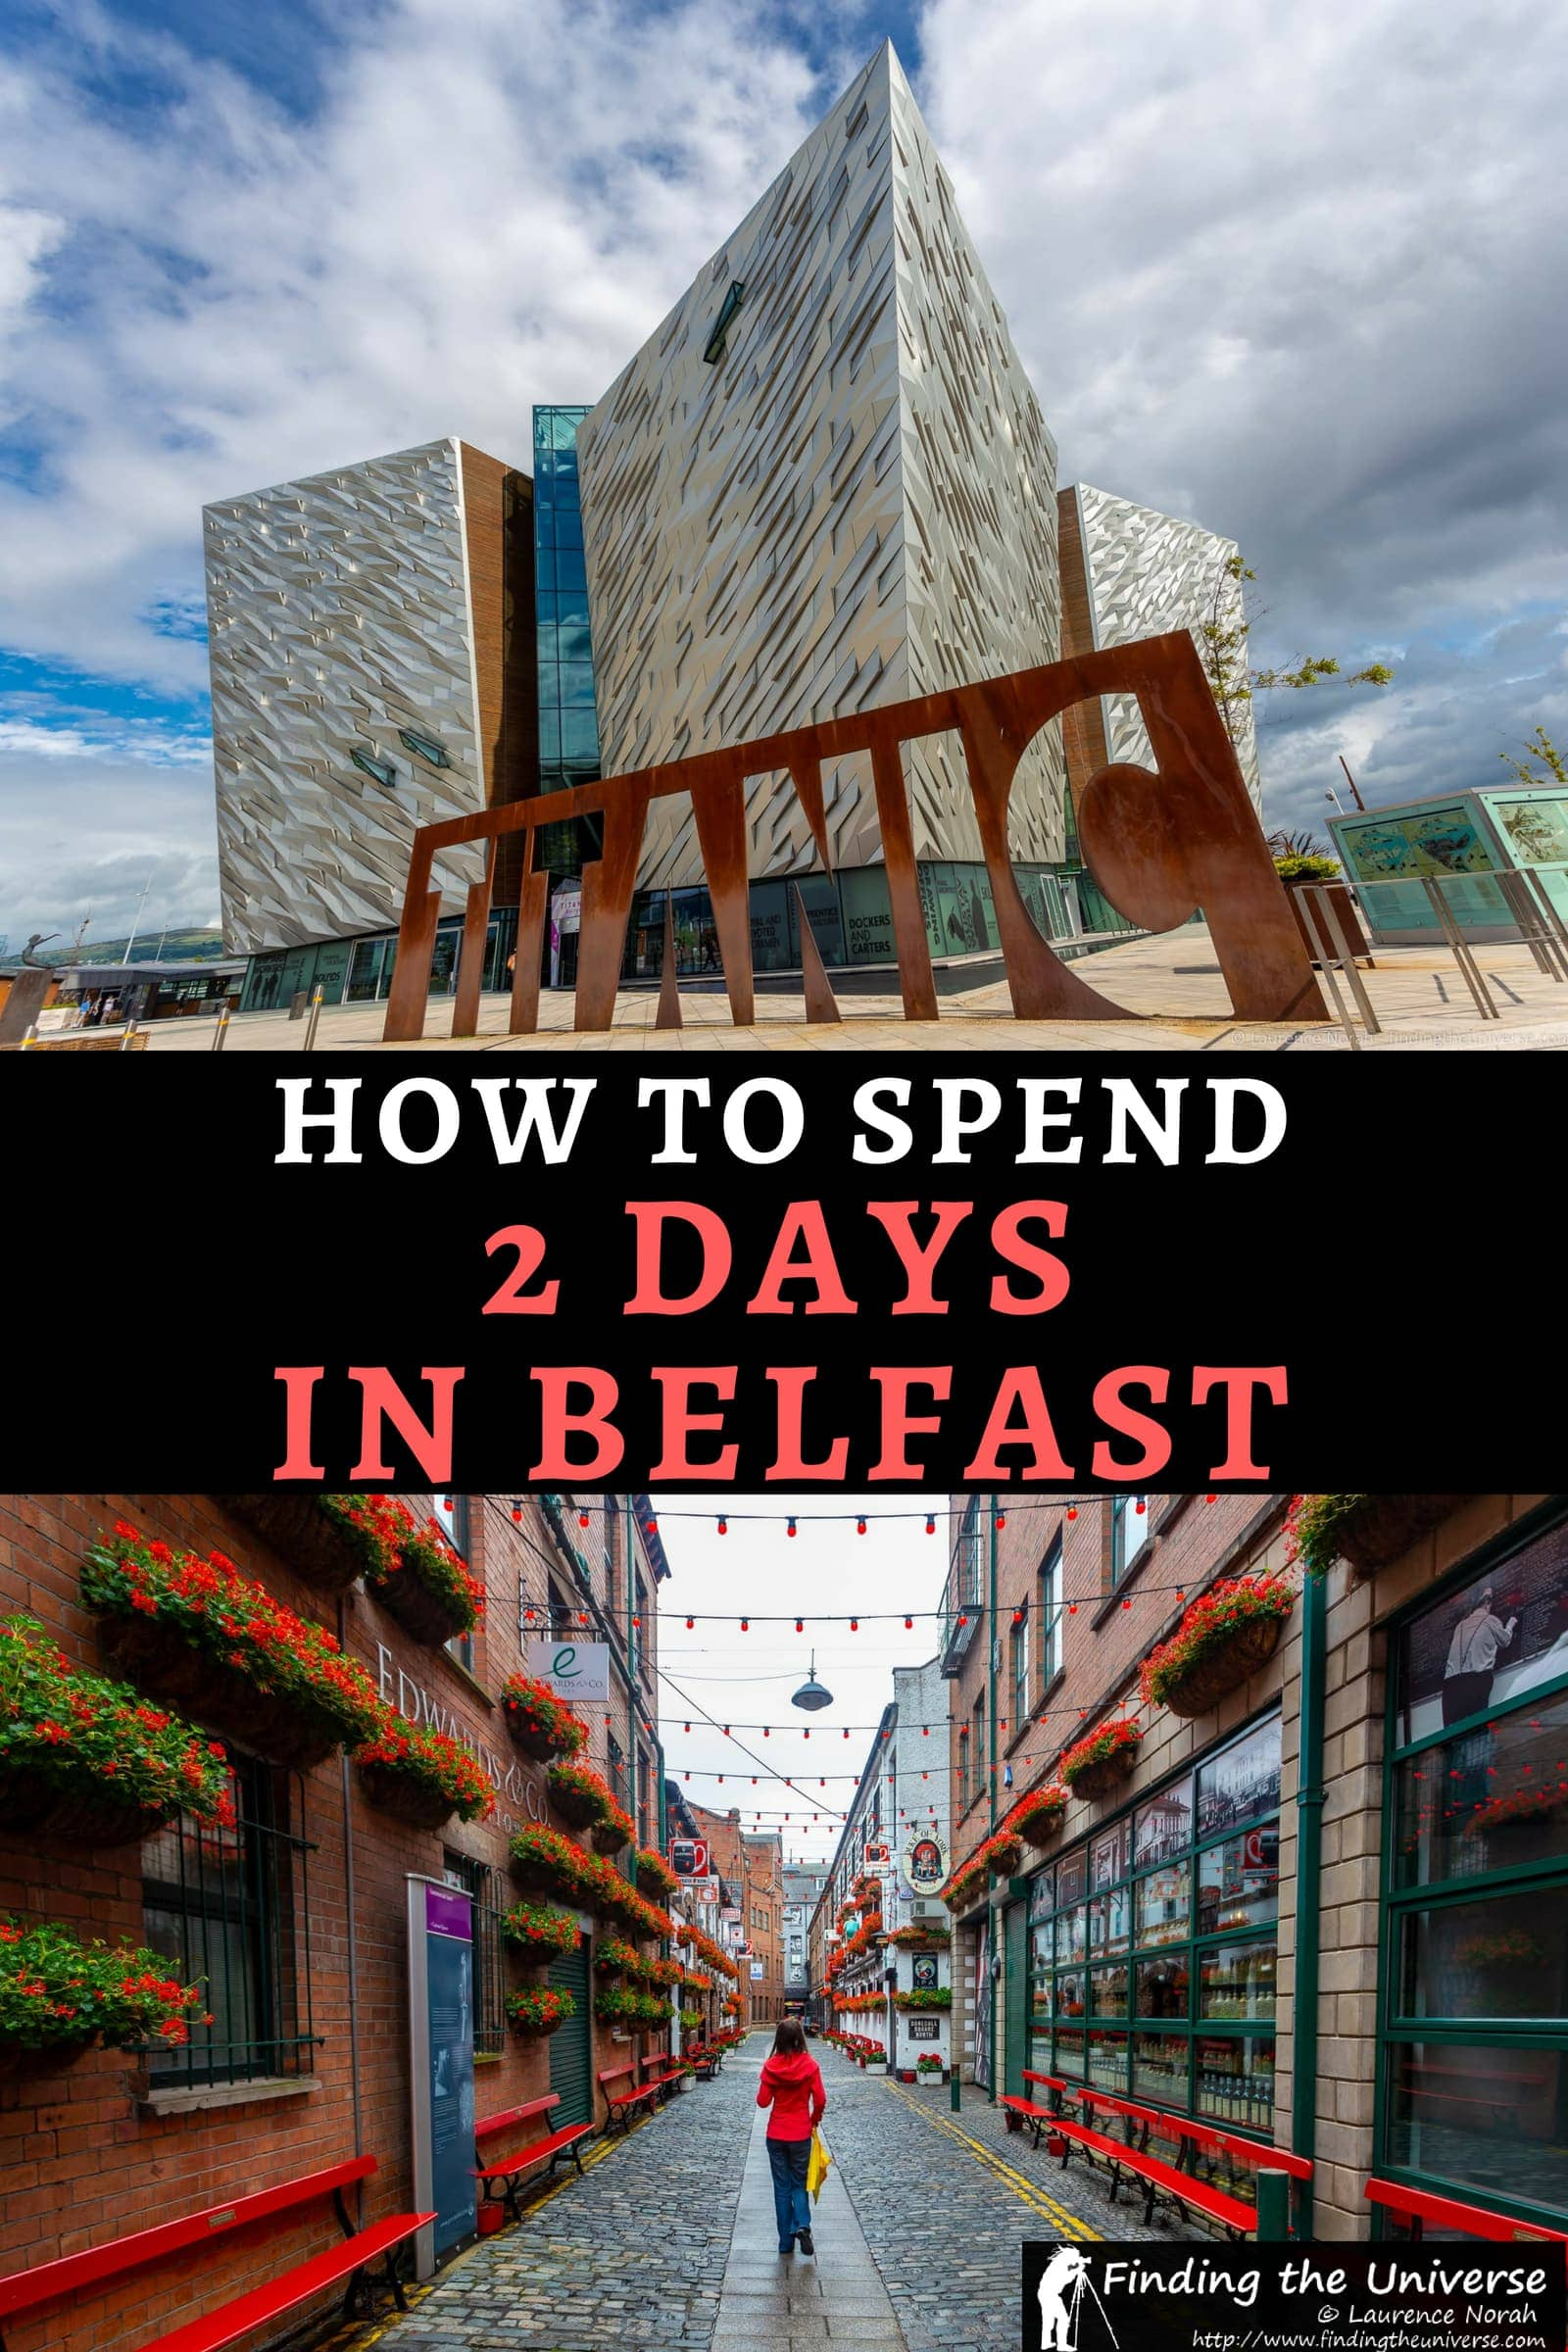 A detailed guide to spending 2 days in Belfast, including what to see in Belfast, tips on getting around, tours to take, and more!